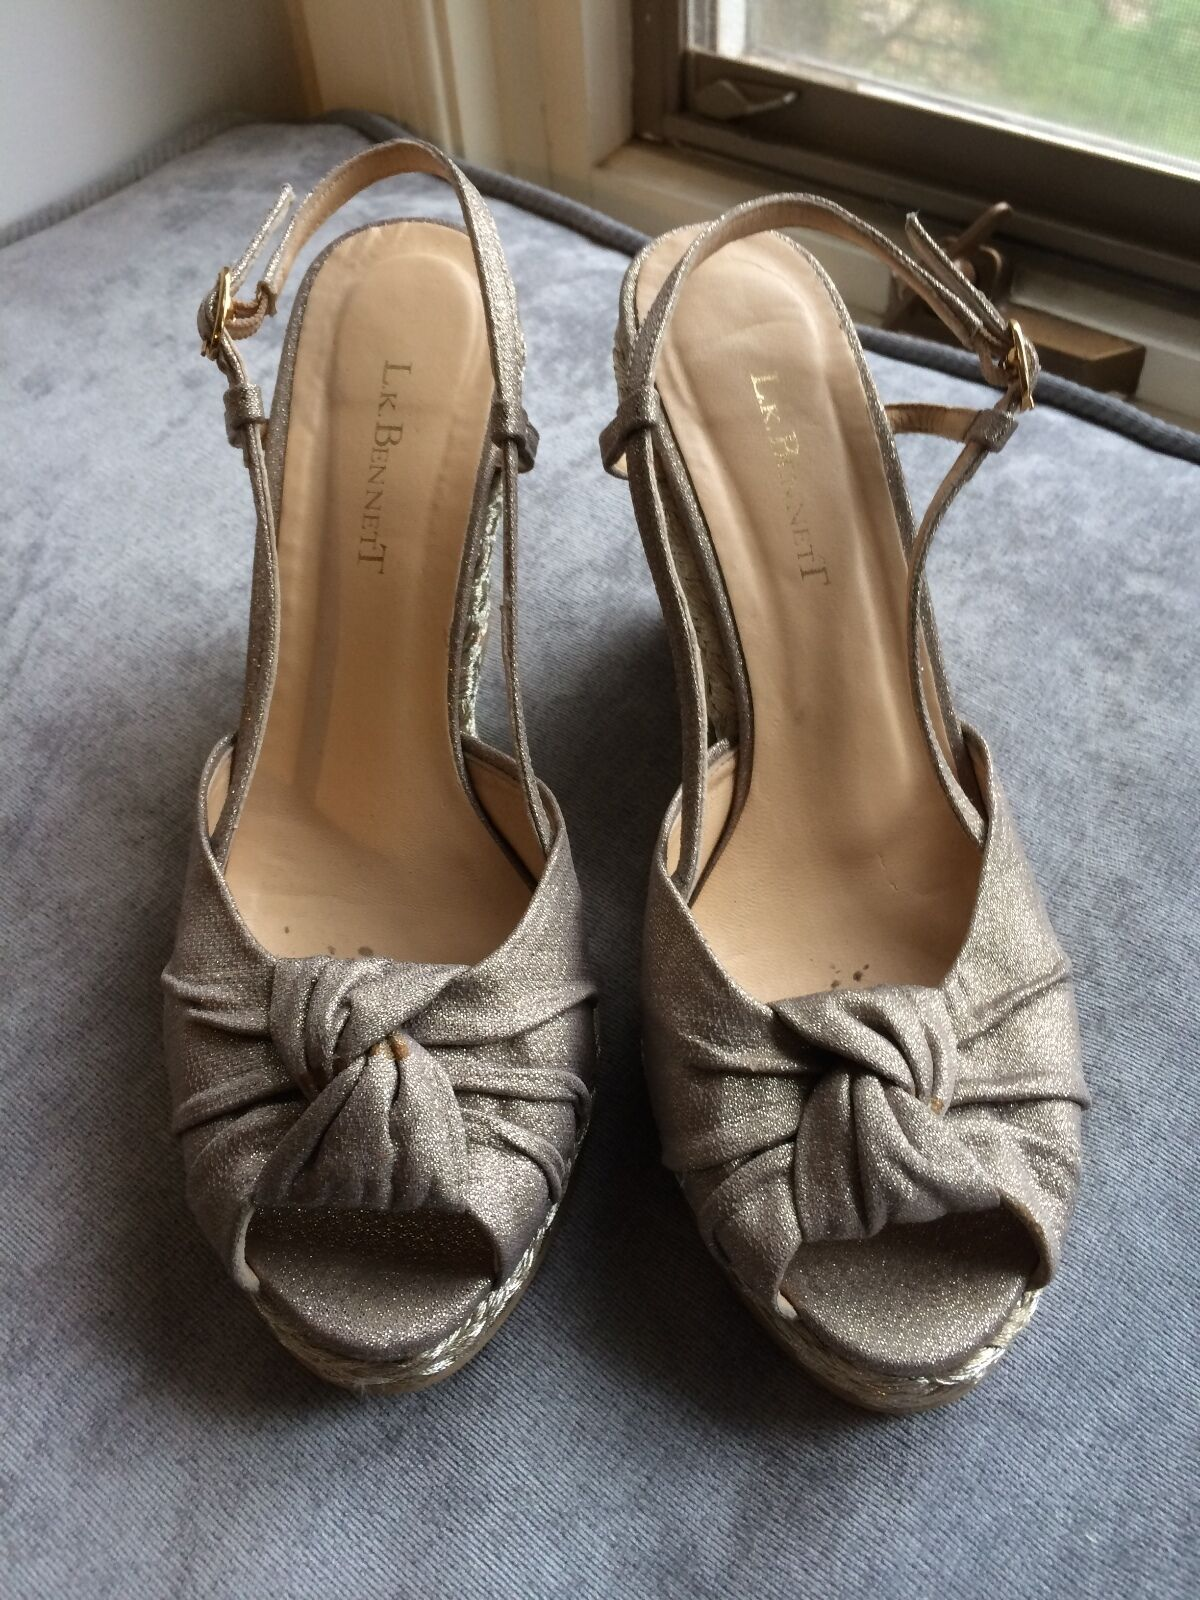 L WEDGE K BENNETT METALLIC GOLD WEDGE L SANDALS GREAT CONDITION 3263a3